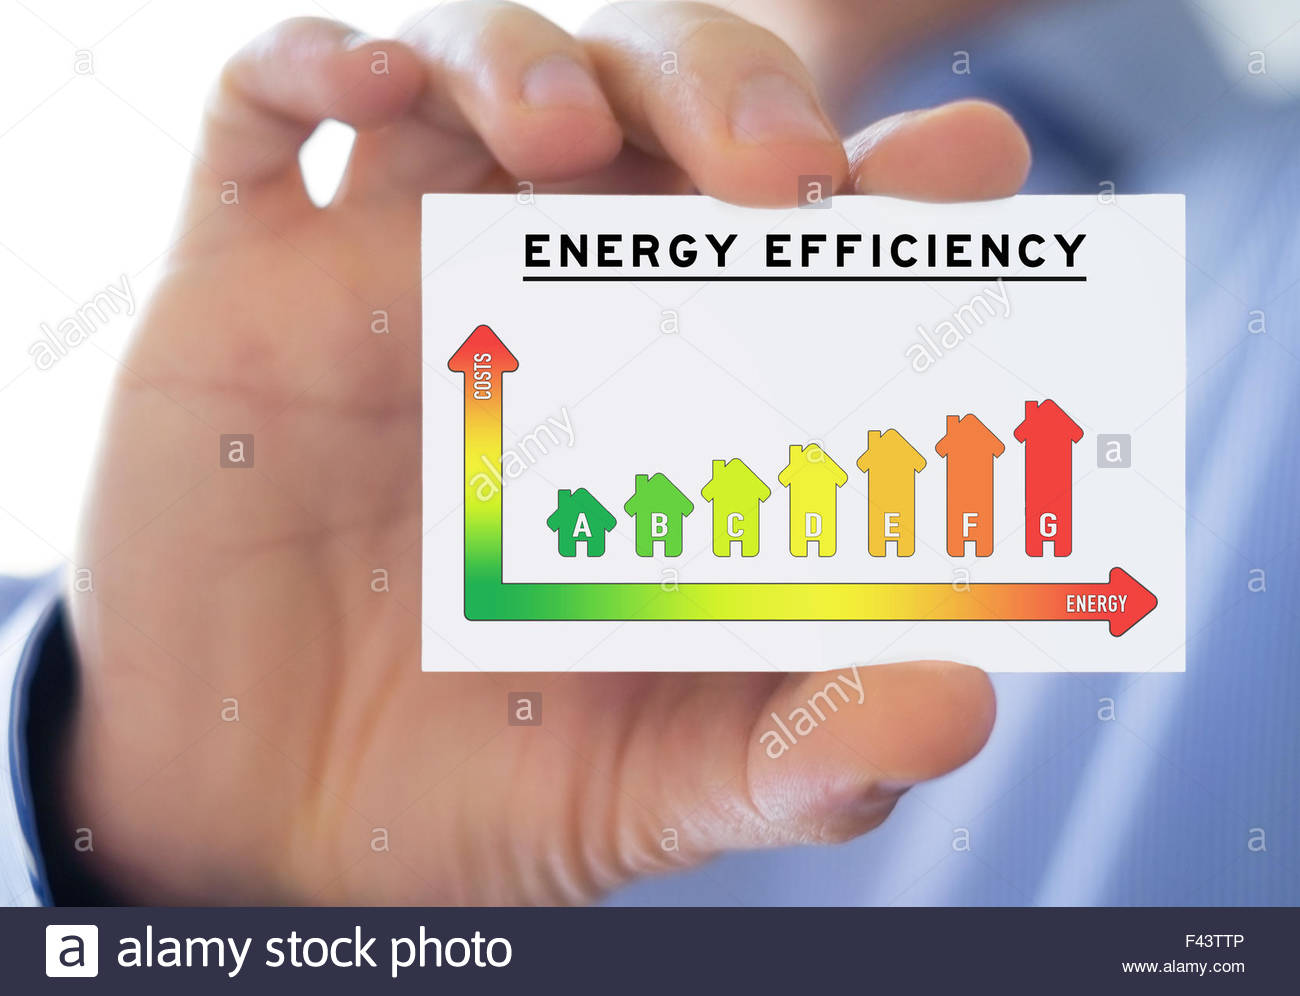 Energy efficiency - business card - Stock Image